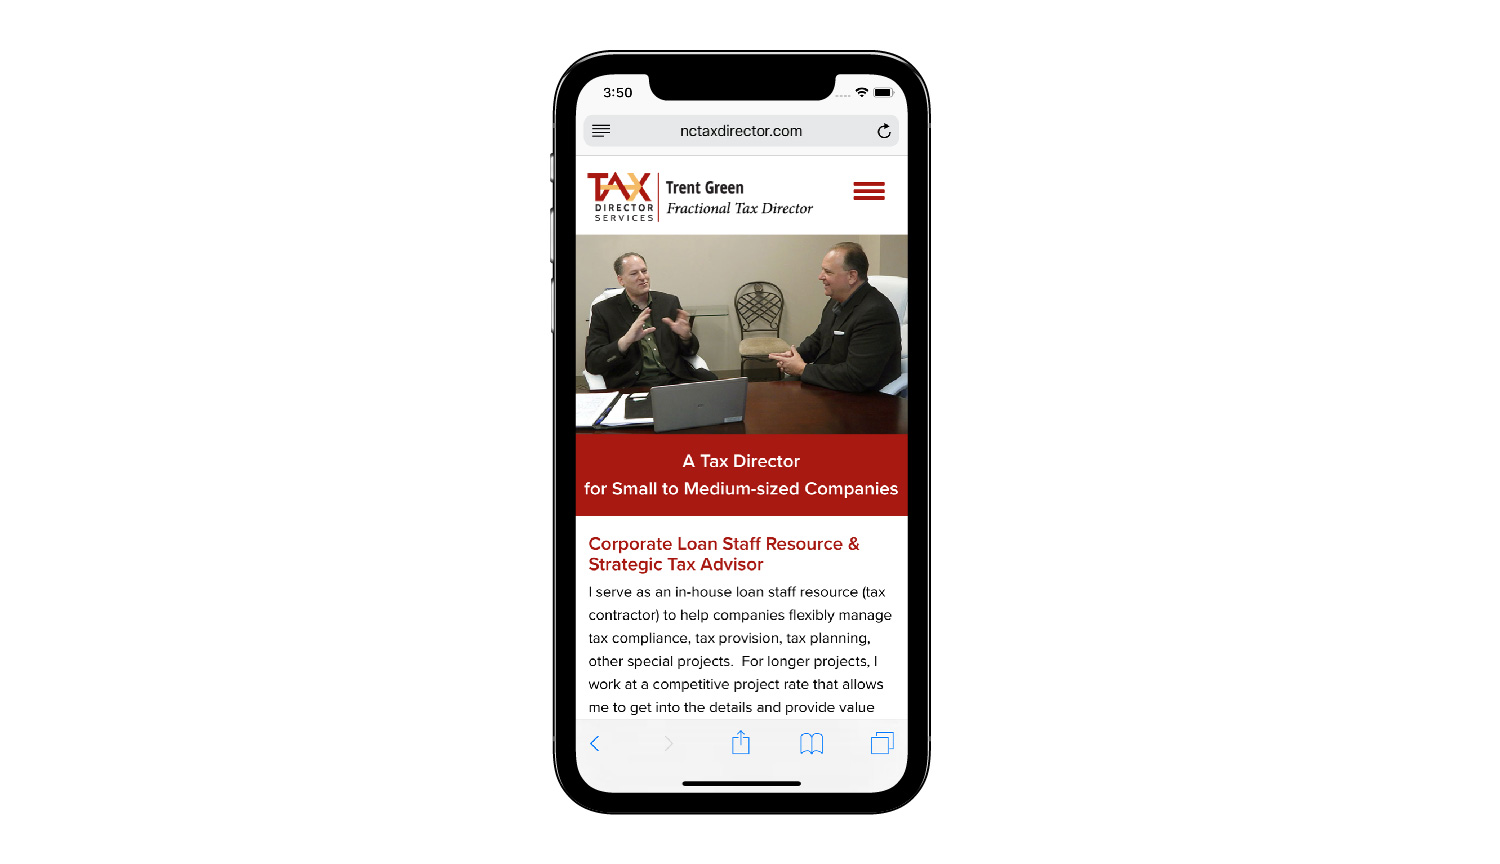 Tax Director Services phone view